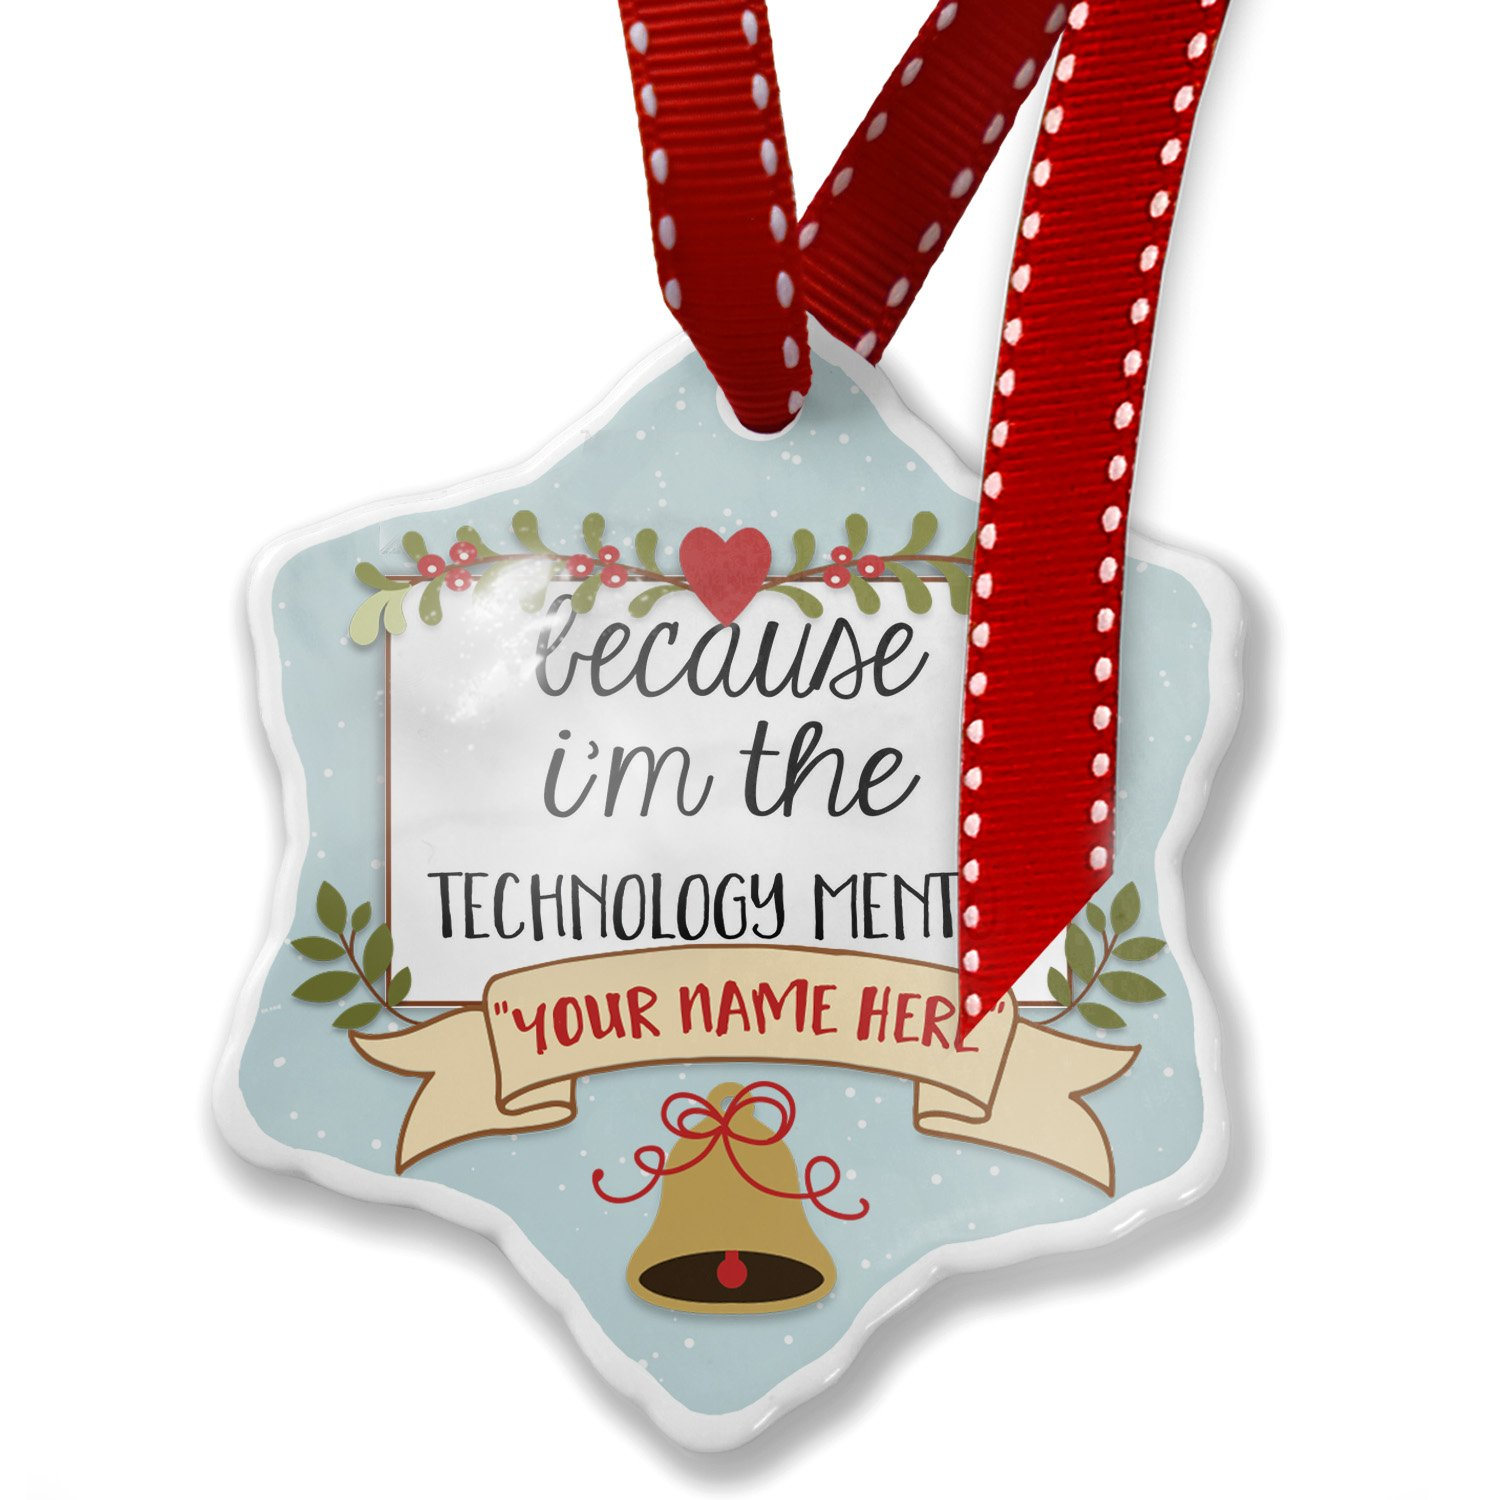 Add Your Own Custom Name, Because I'm The Technology Mentor Funny Saying Christmas Ornament NEONBLOND